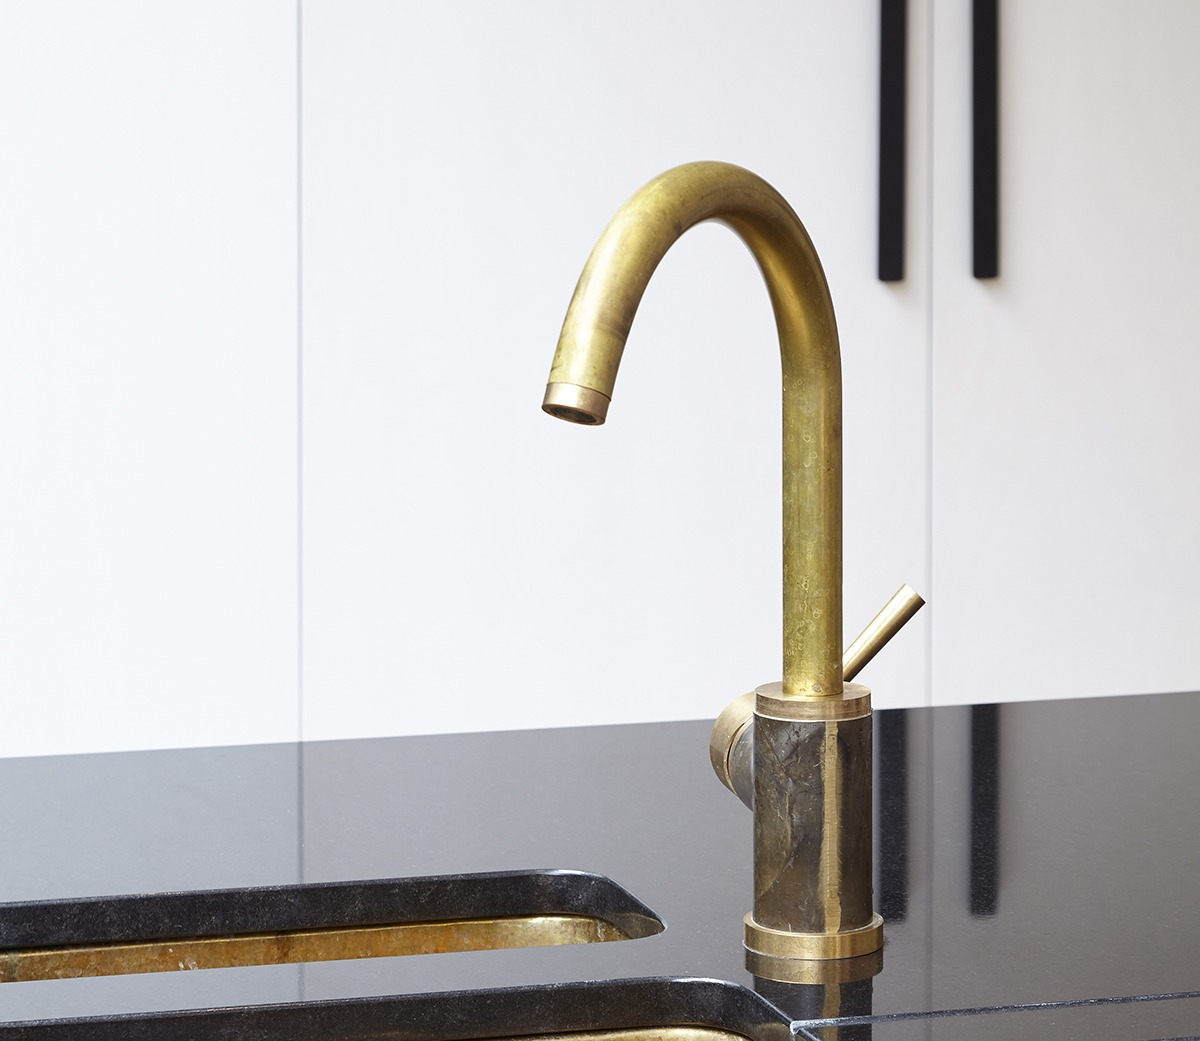 Brass Mixer Tap, 1 Hole / Swivel Ppout - The French House